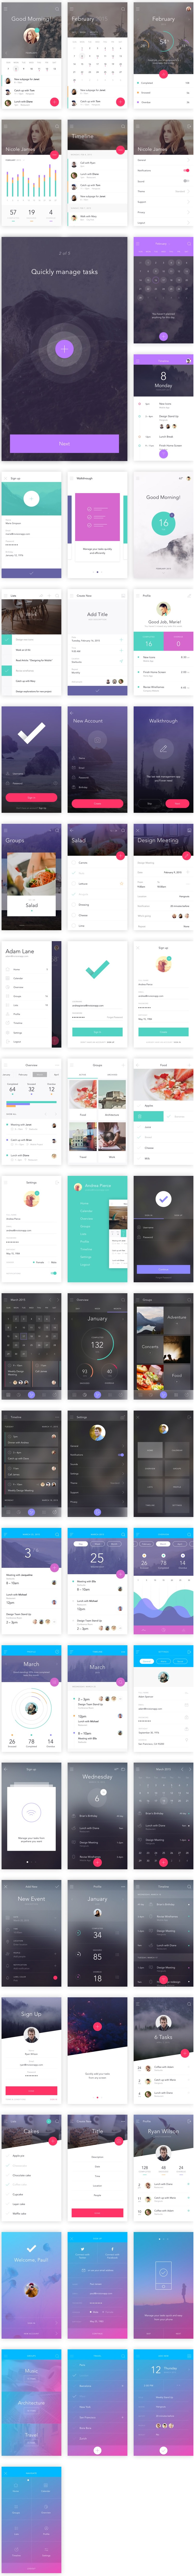 http://www.graphicsfuel.com/wp-content/uploads/2015/06/do-mobile-app-ui-kit2.jpg